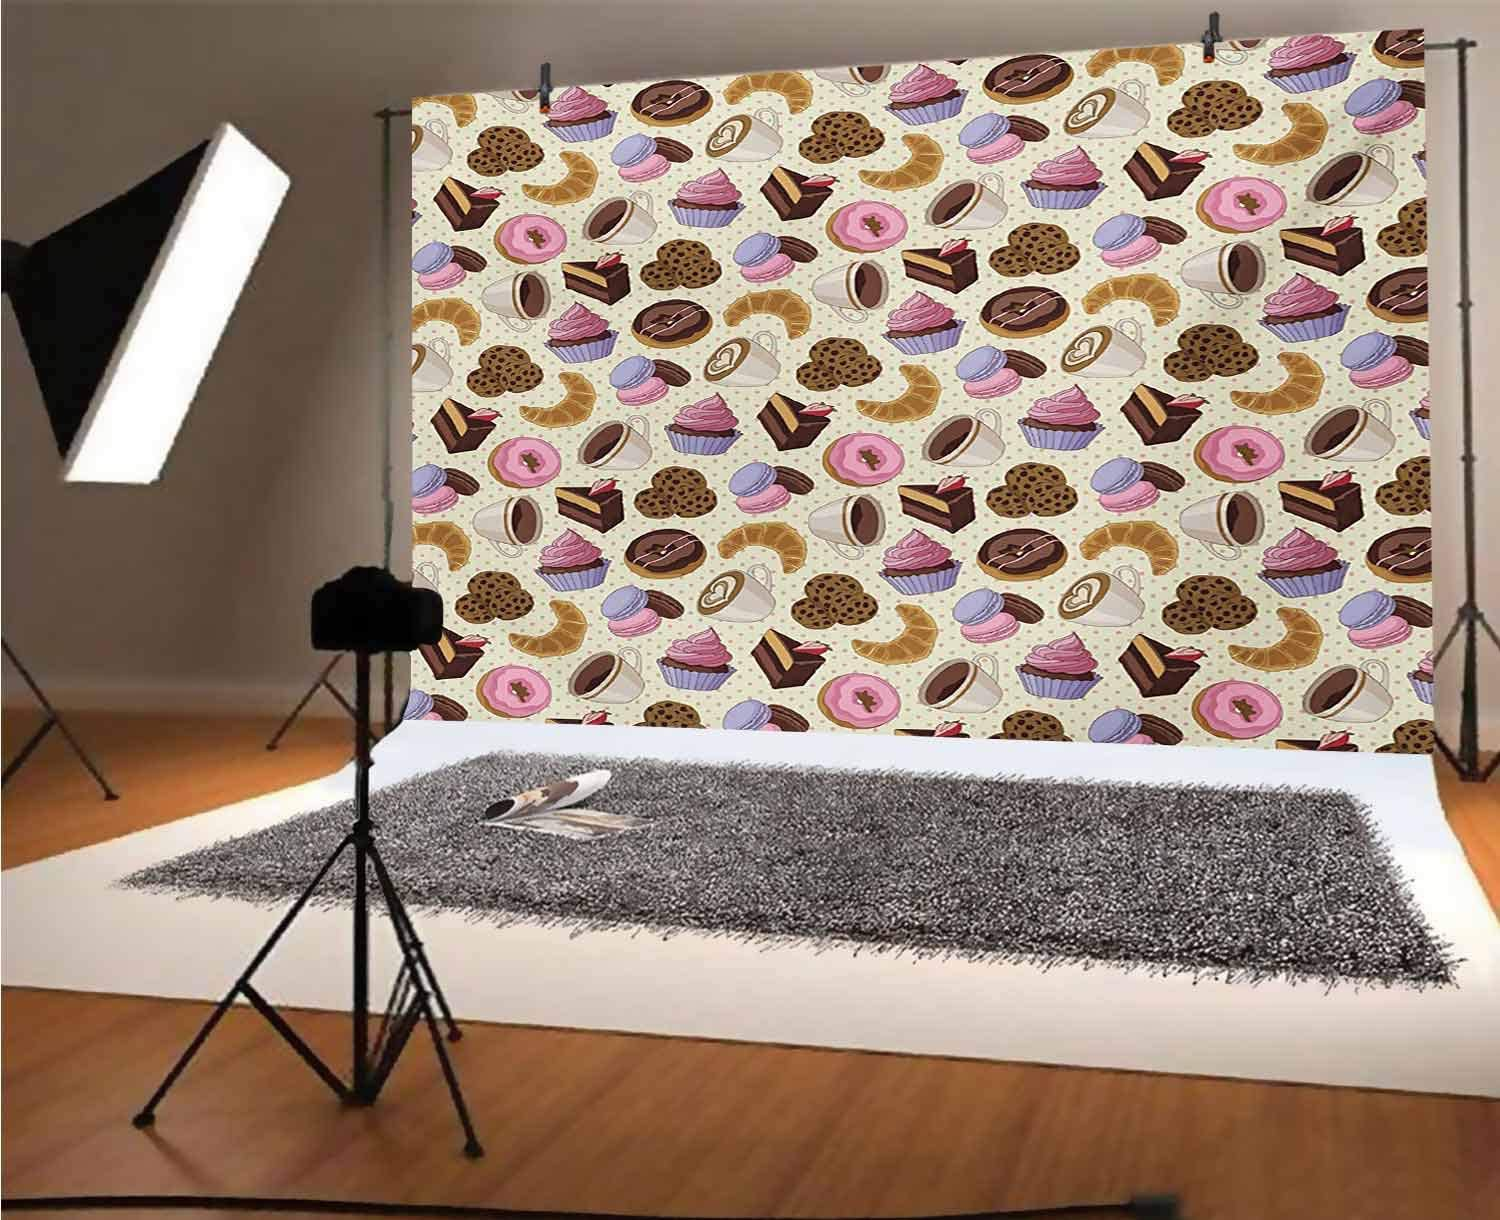 Coffee 10x8 FT Vinyl Photography Backdrop,Coffee Shop Themed Image with Cups Sweet Cookies Cake Chocolate Artwork Pattern Background for Baby Birthday Party Wedding Studio Props Photography